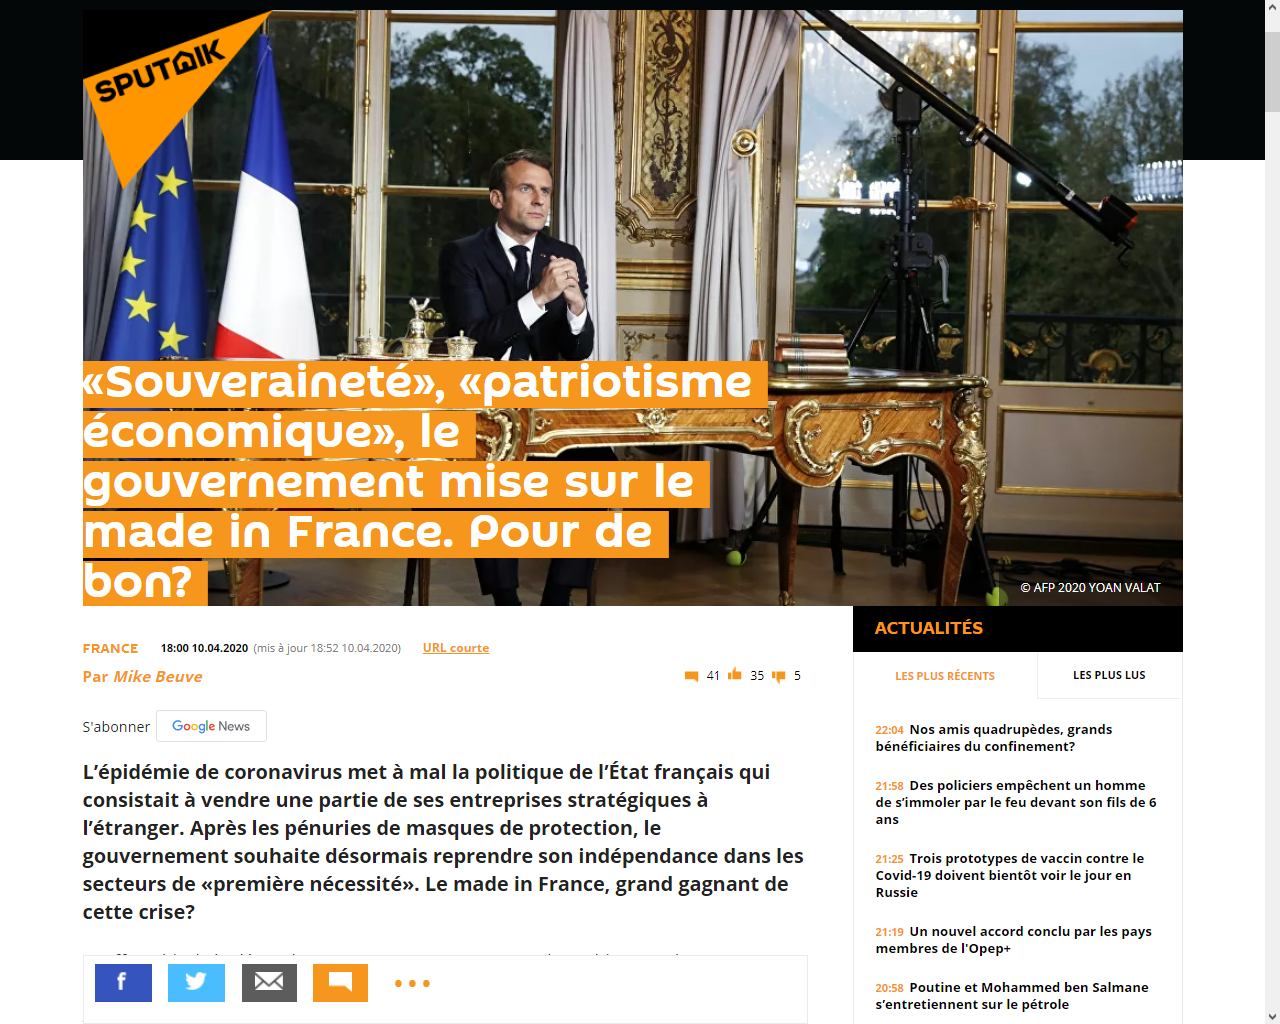 https://fr.sputniknews.com/france/202004101043527425-souverainete-patriotisme-economique-le-gouvernement-mise-sur-le-made-in-france-pour-de-bon/